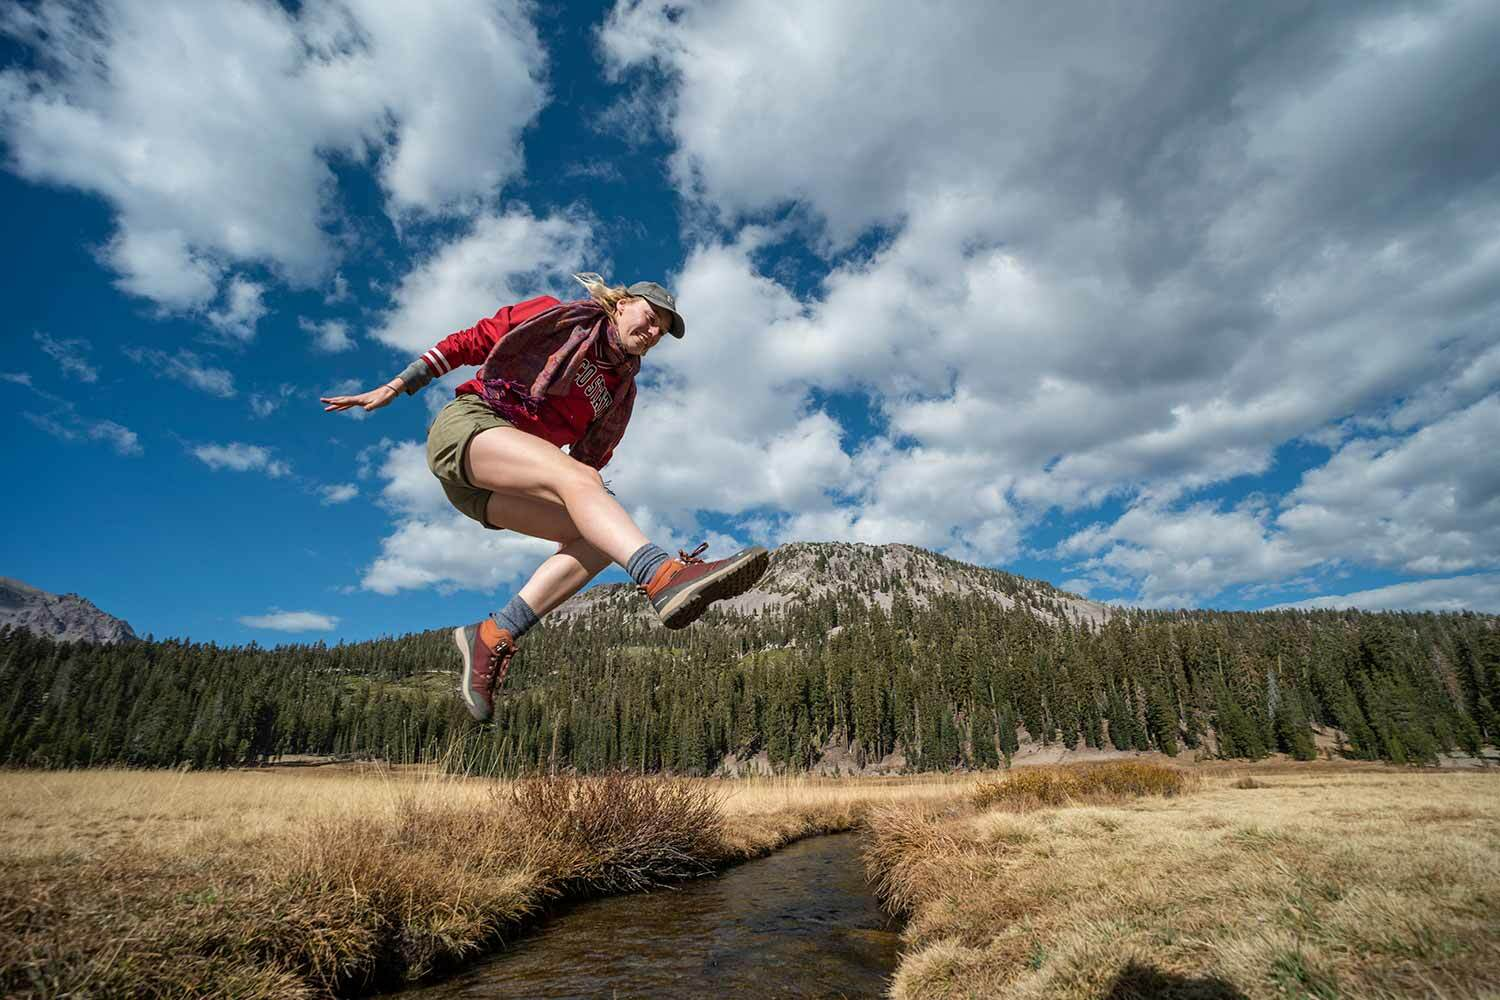 A student in a Chico State sweat shirt leaps heroically over a creek.